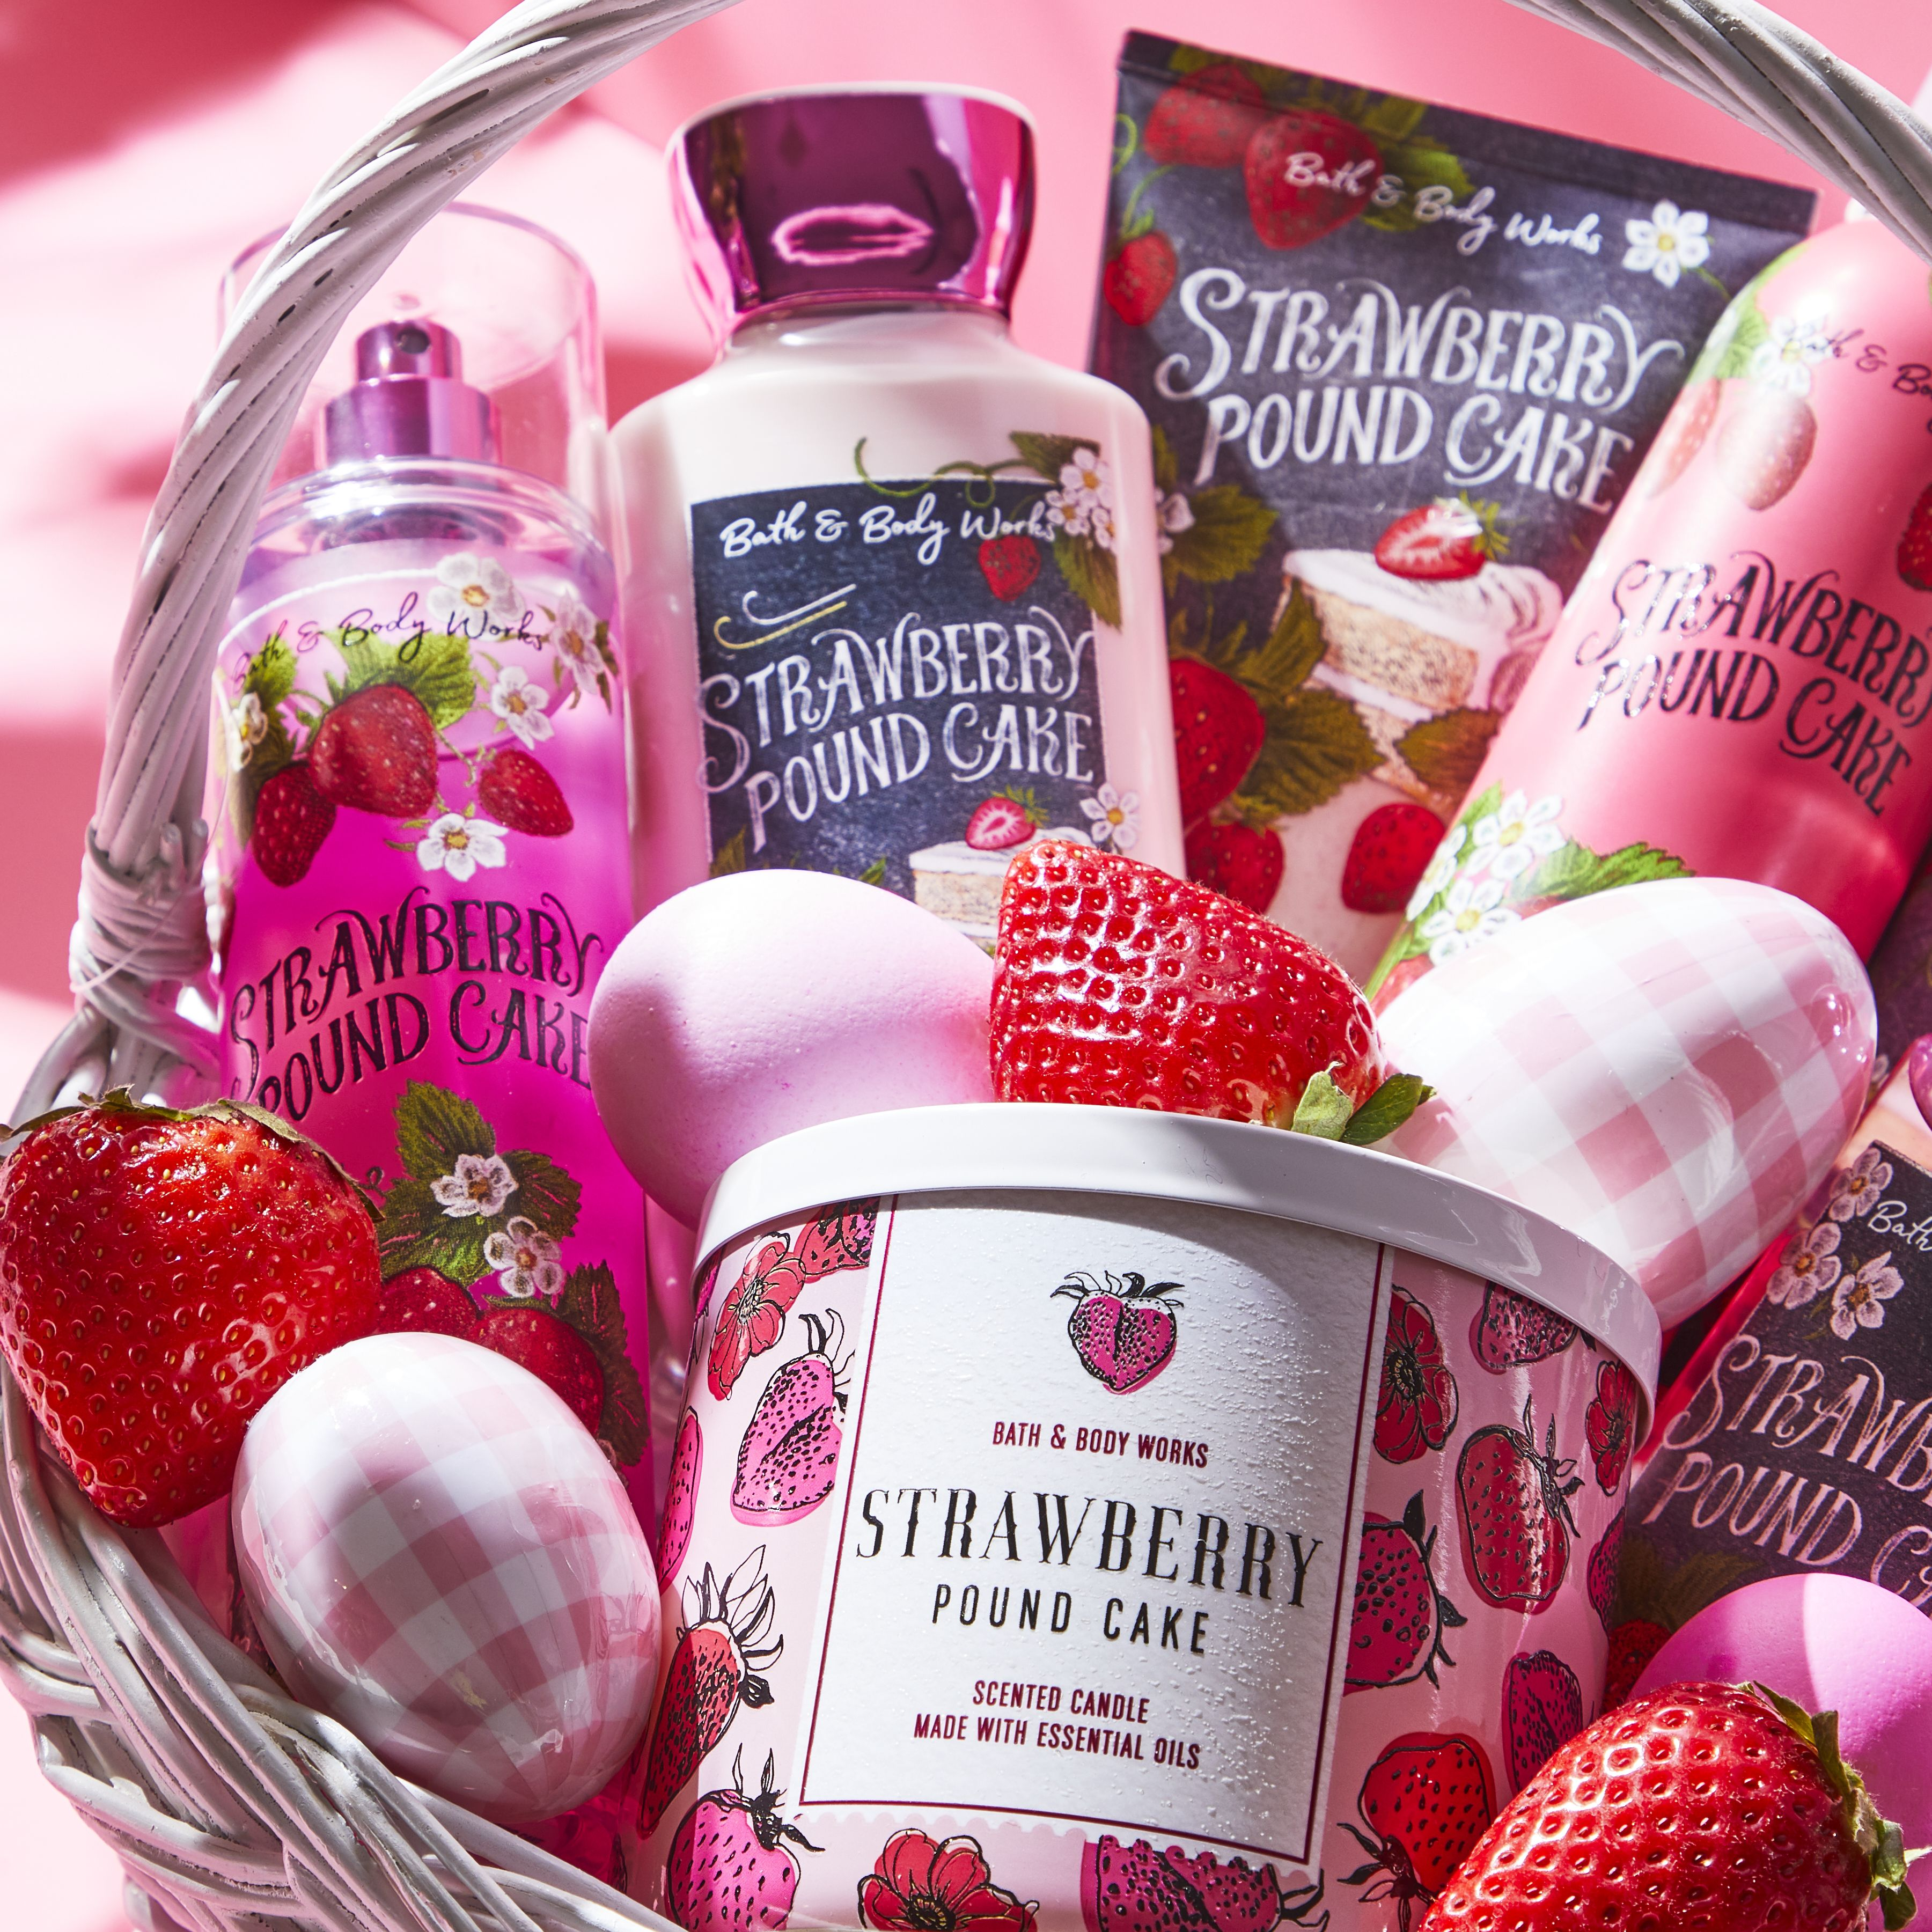 Create a cute pink easter basket with all the strawberry